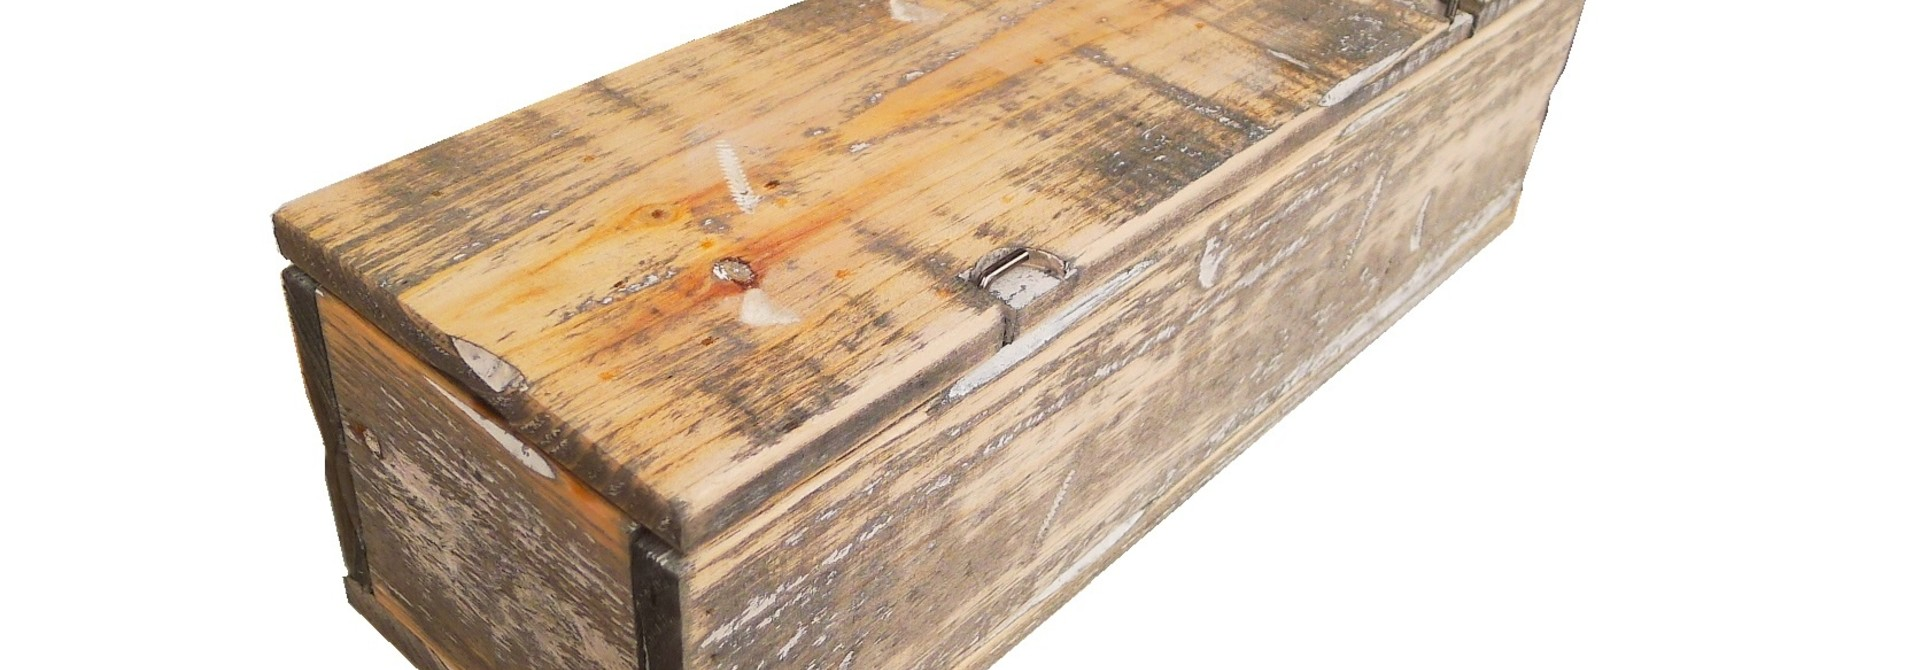 box old dutch wine 1B plain